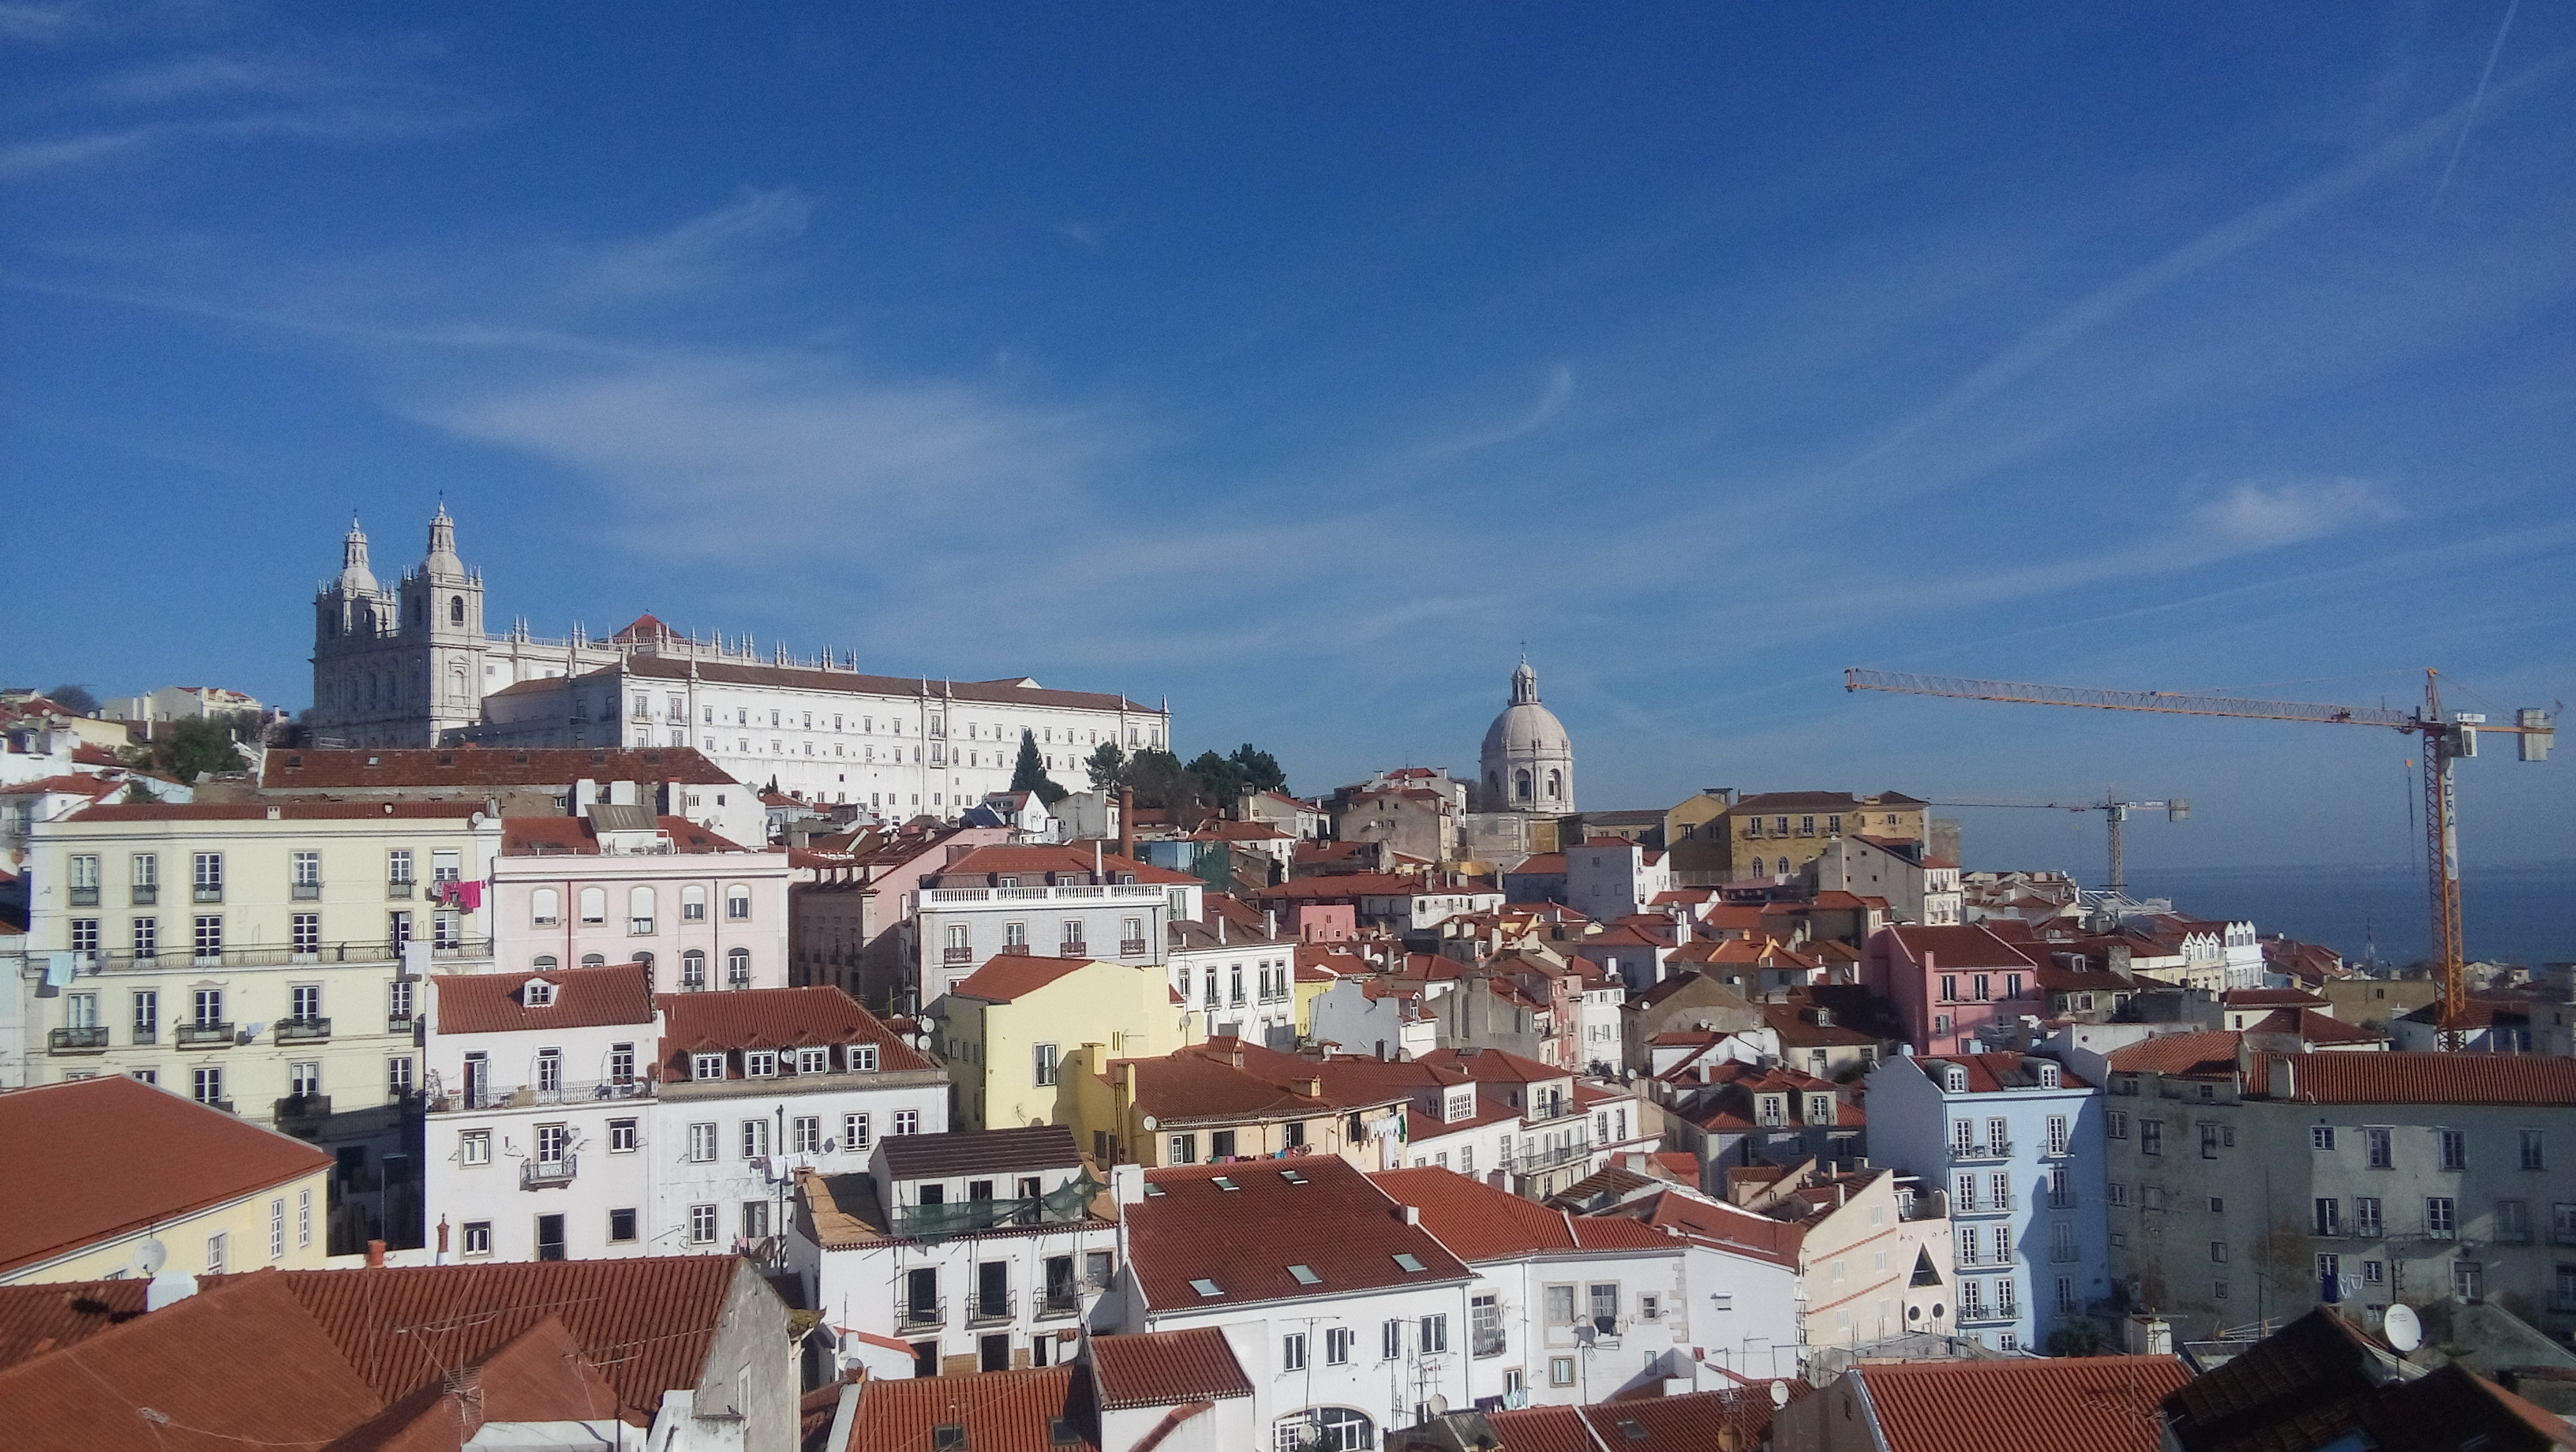 Lisbon and its roofs